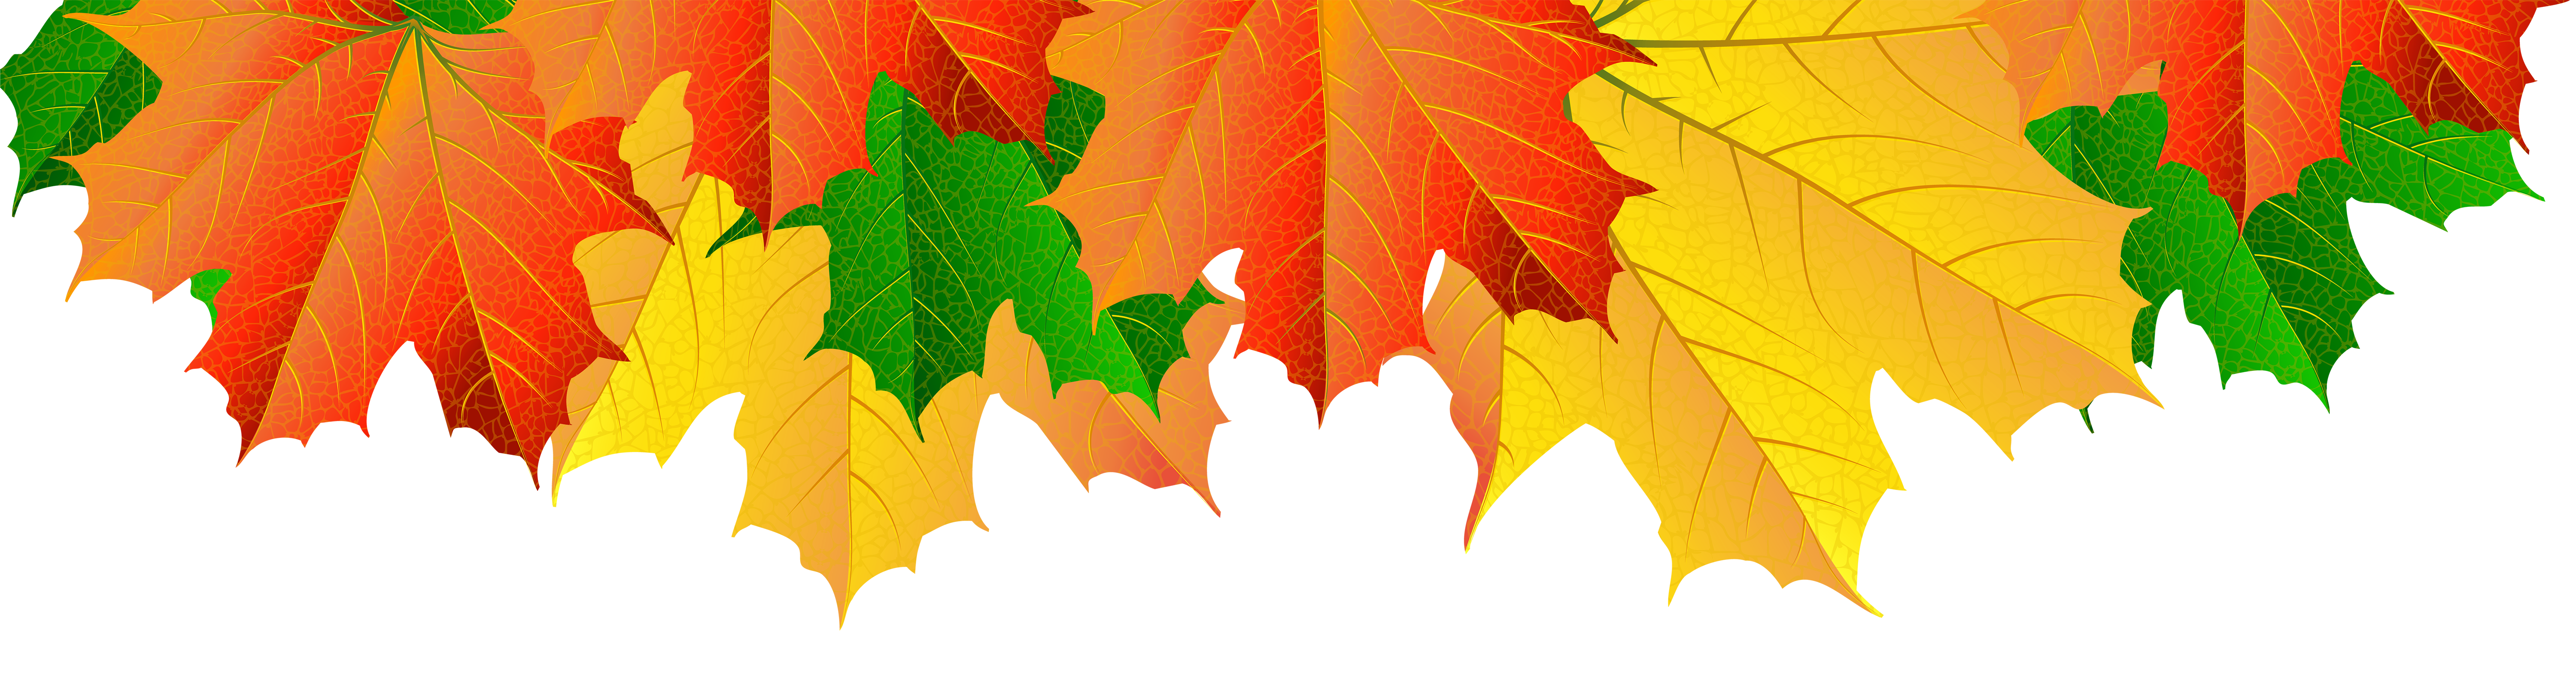 Fall tree border clipart picture library download Fall Leaves Border PNG Clip Art Image | Gallery Yopriceville - High ... picture library download